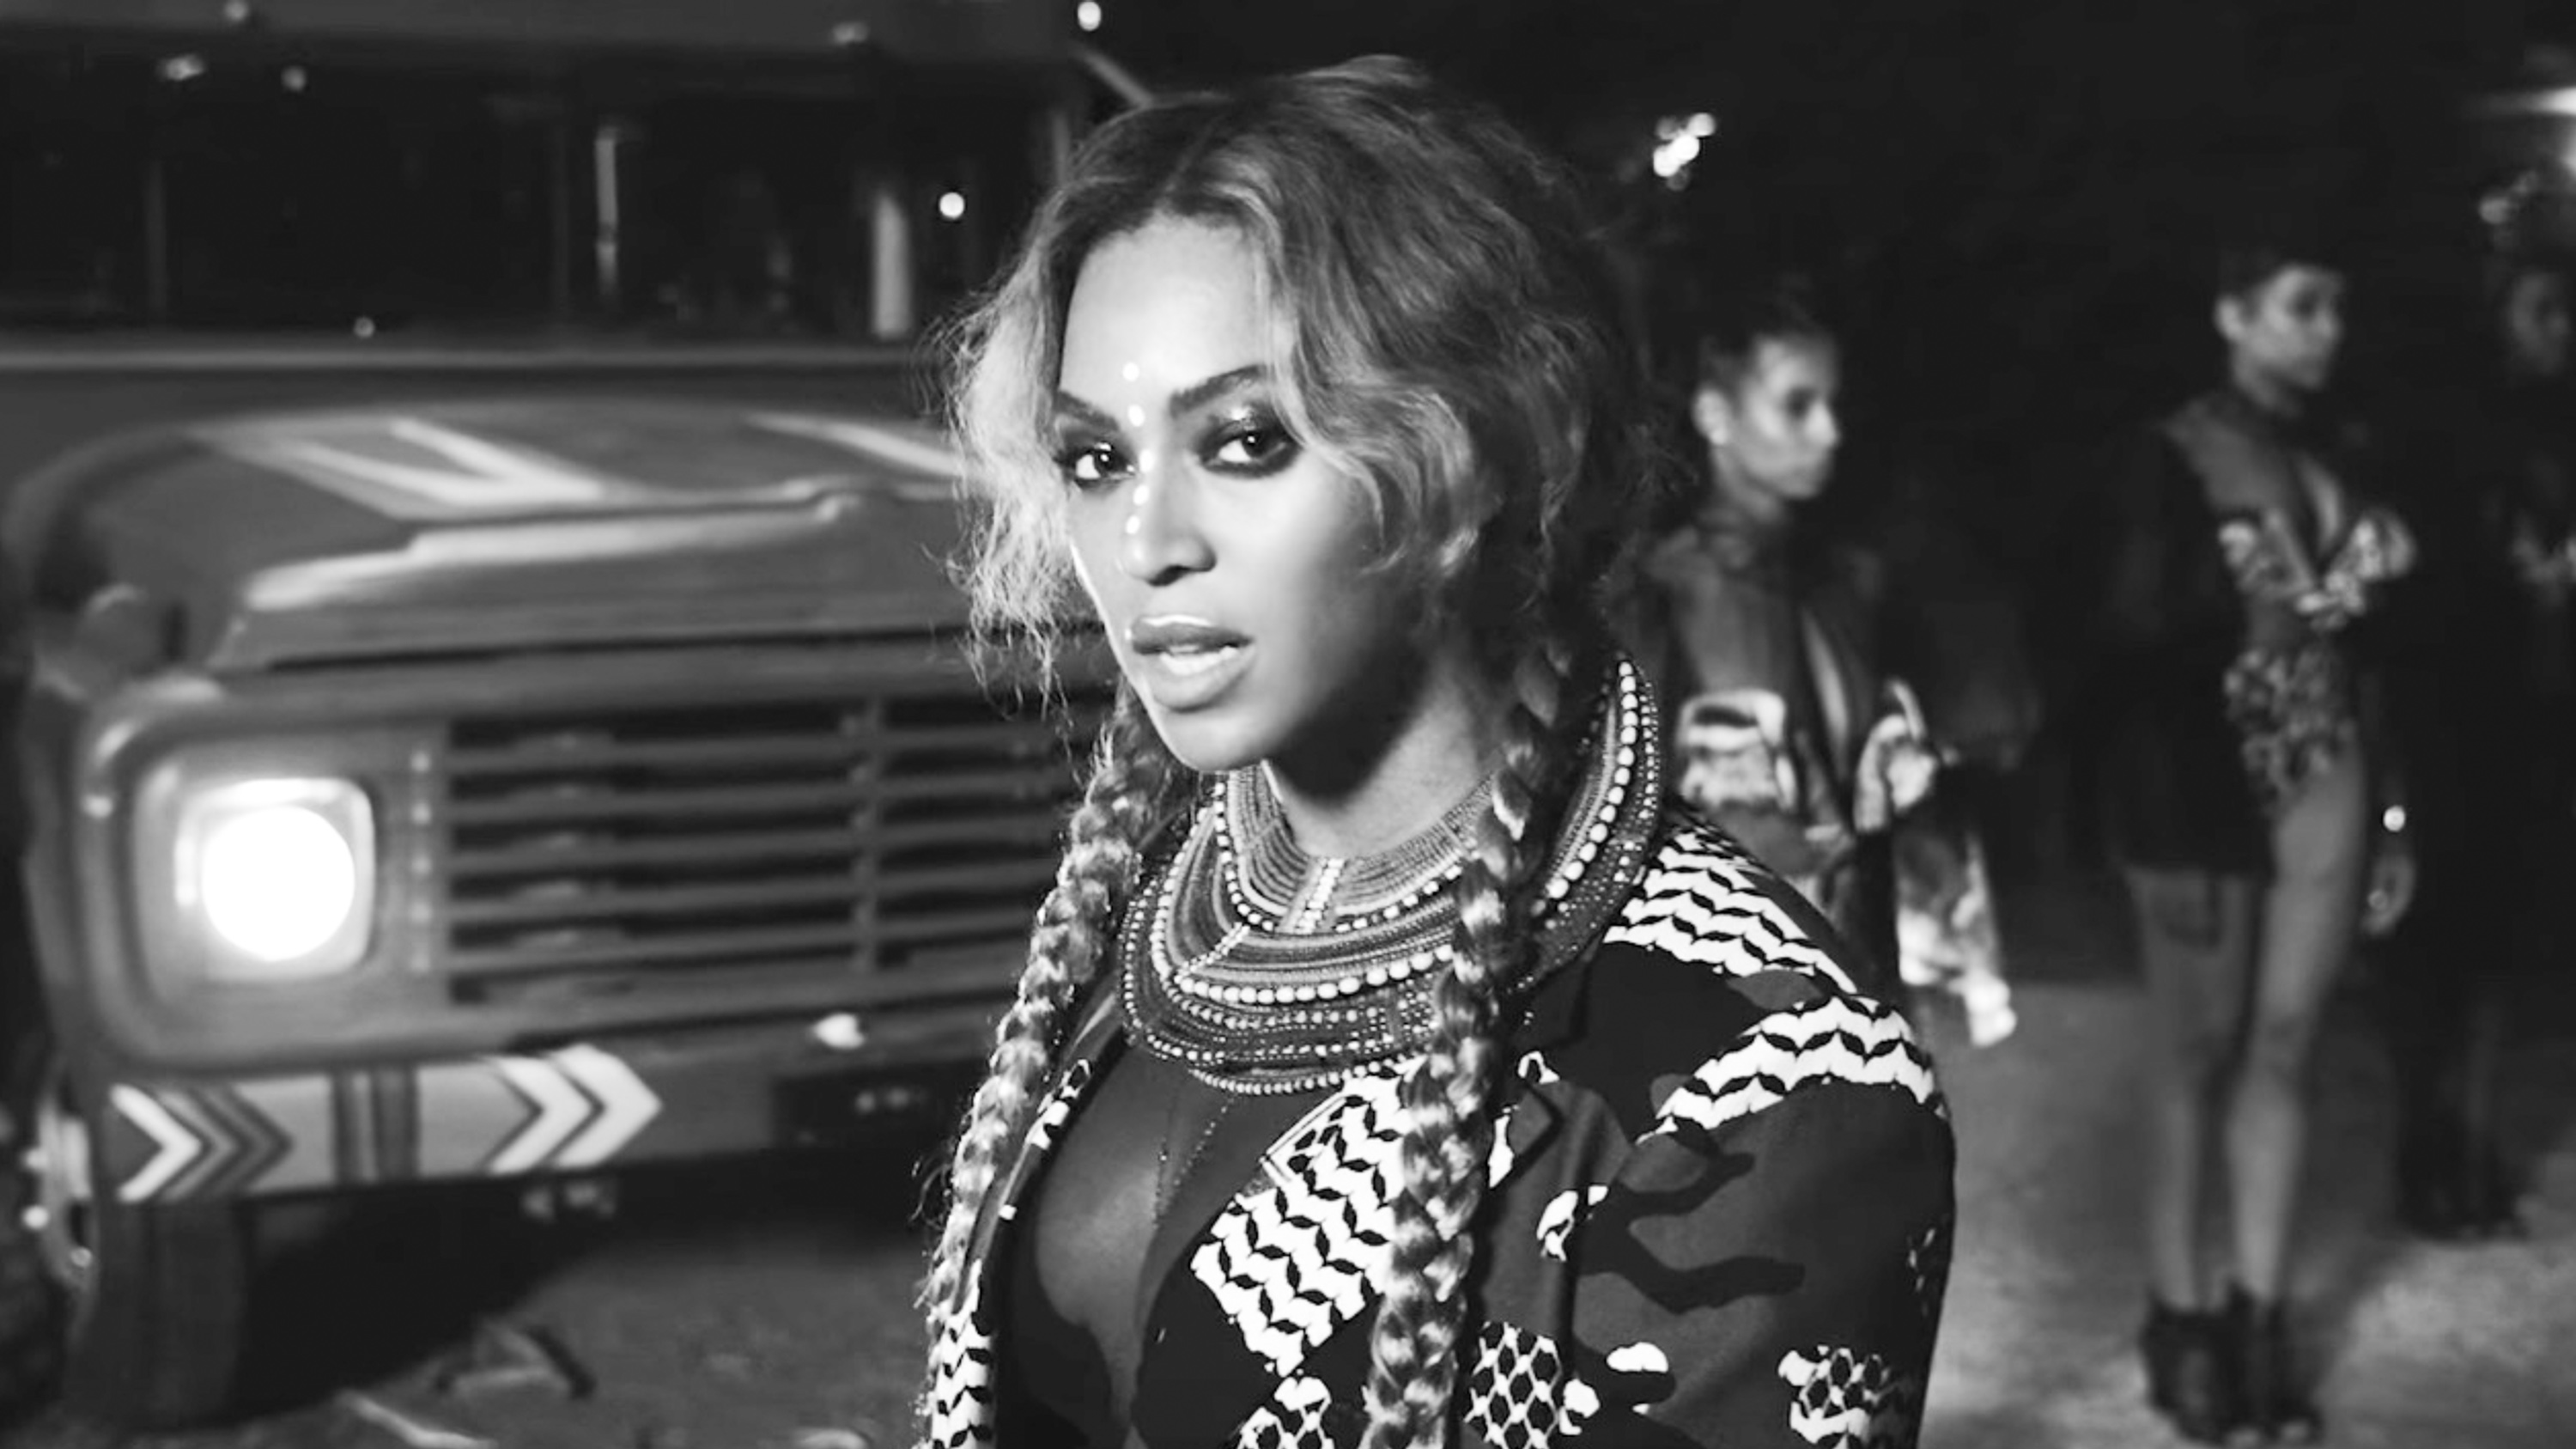 Beyonce Released 'Sorry' Demo and the Beyhive is Swarming